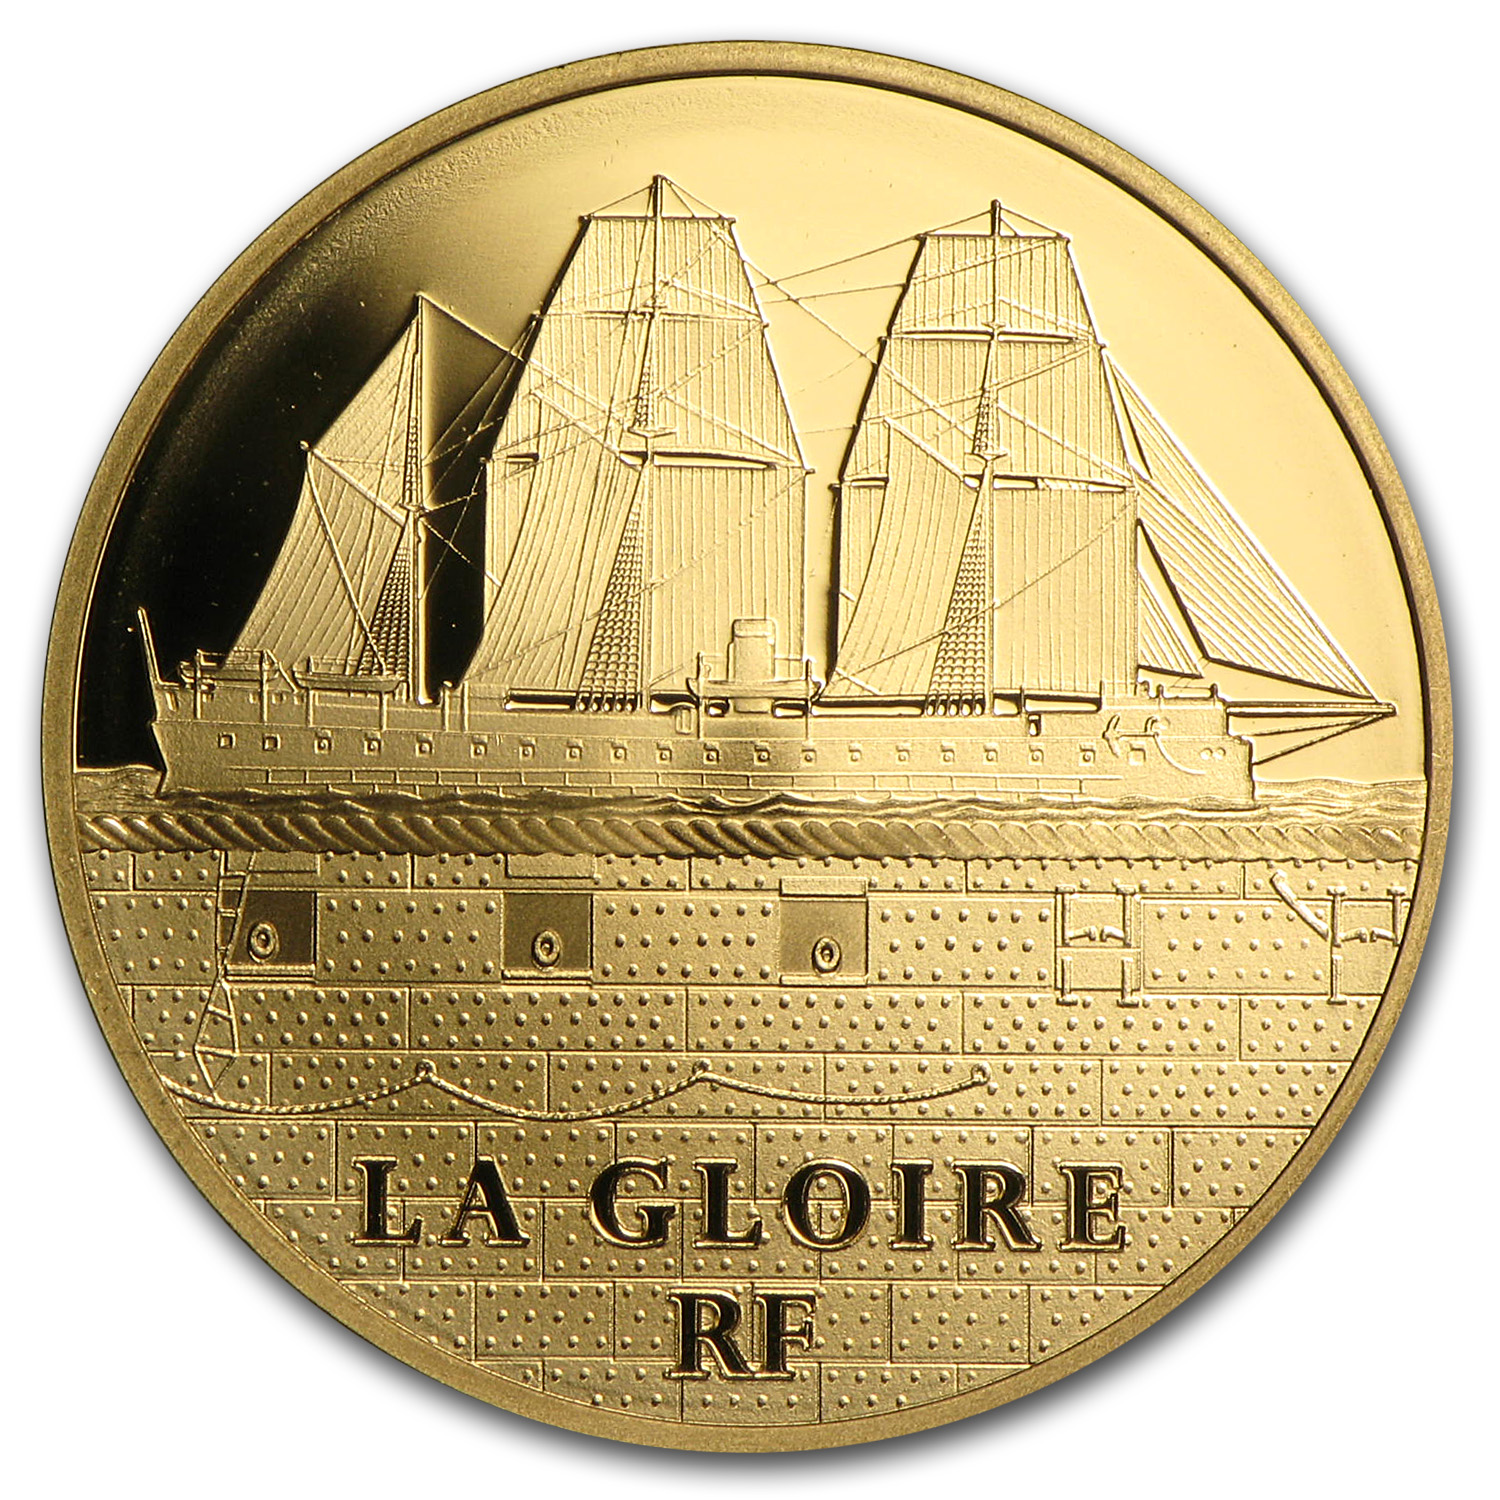 2013 1/4 oz Proof Gold Great French Ships La Gloire